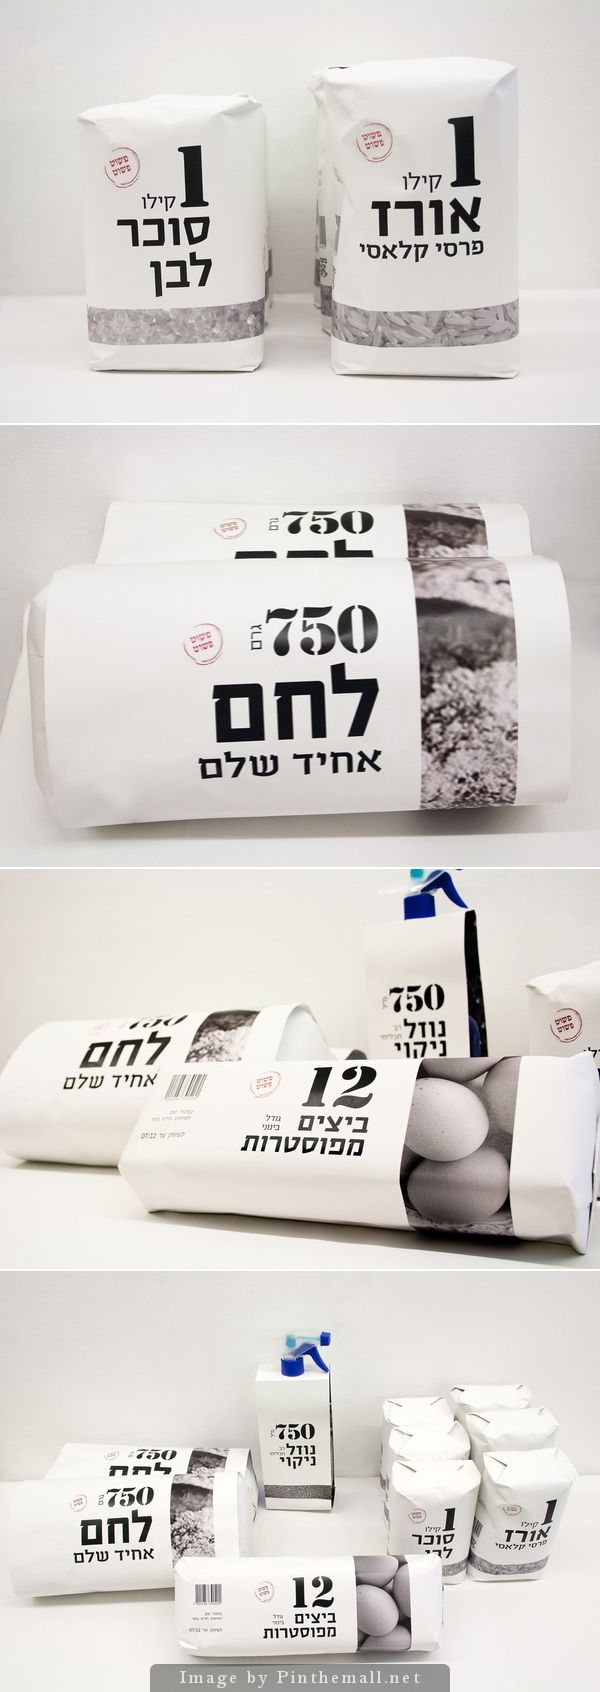 Simplicity in food packaging design, yes PD